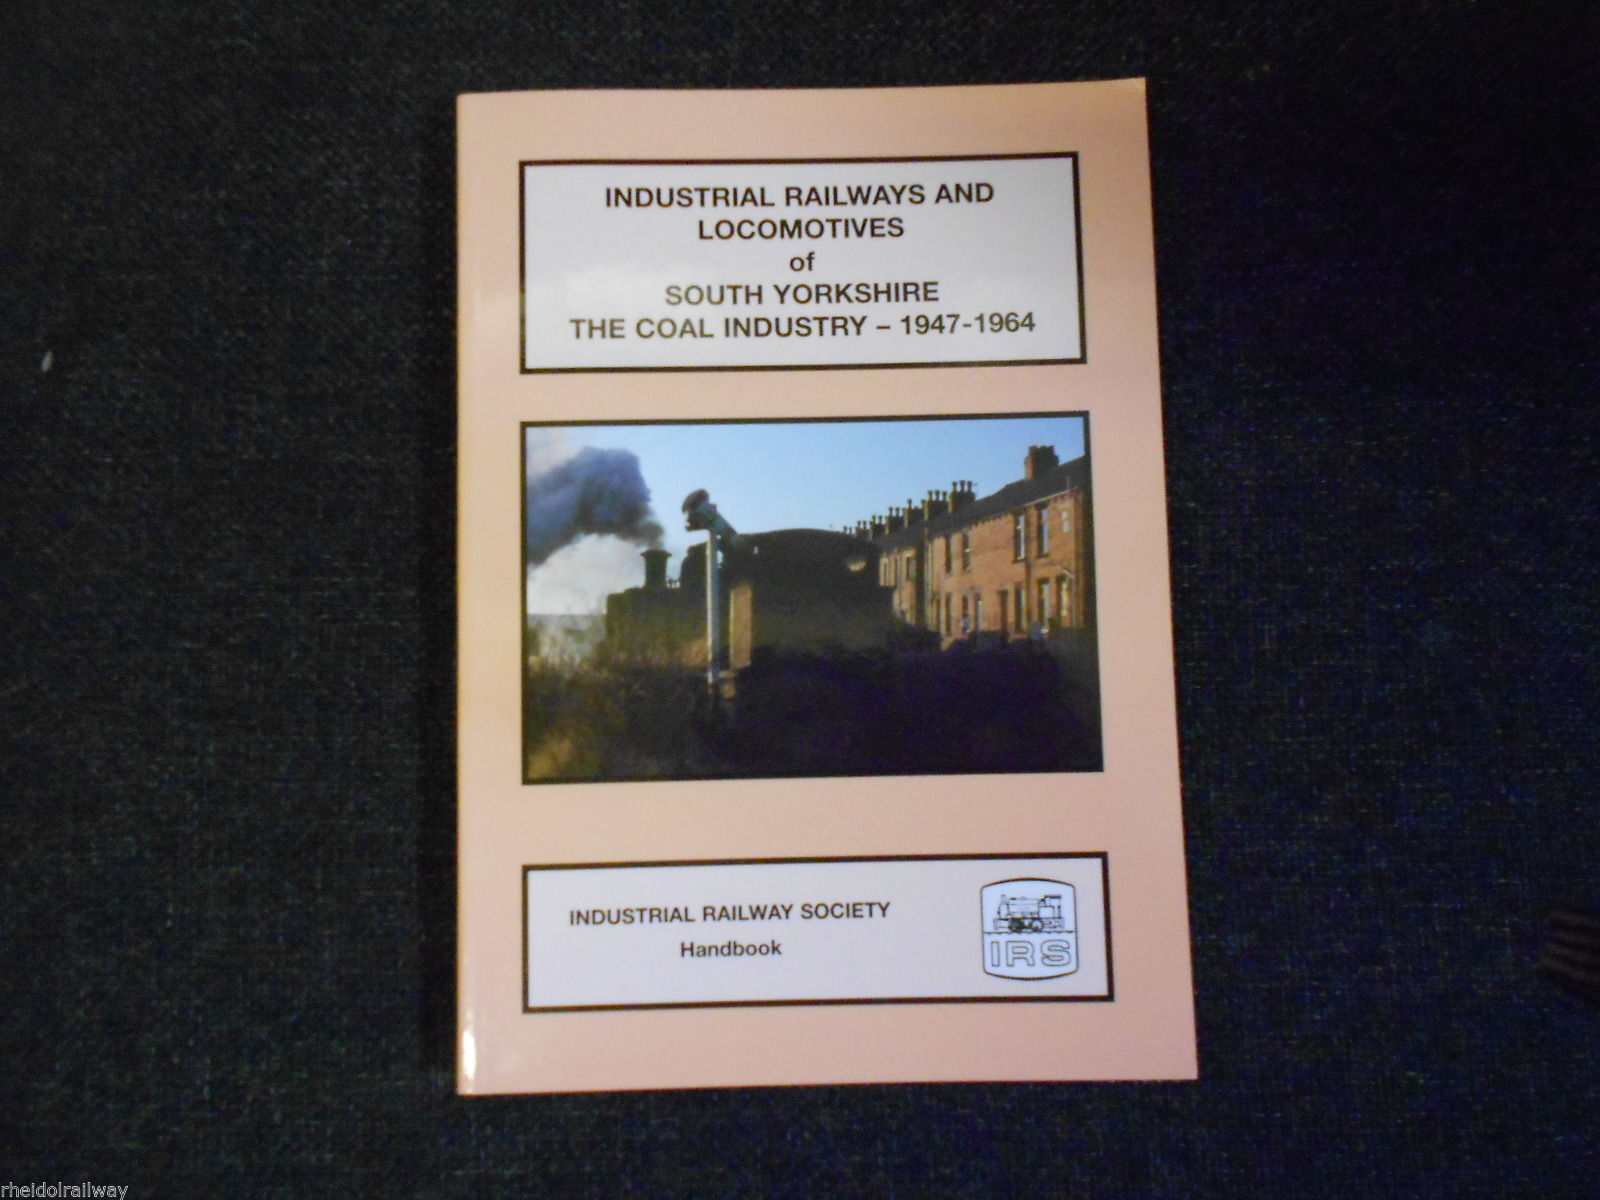 Industrial Railways & Locomotives Of South Yorkshire, Coal Industry,1947-1964